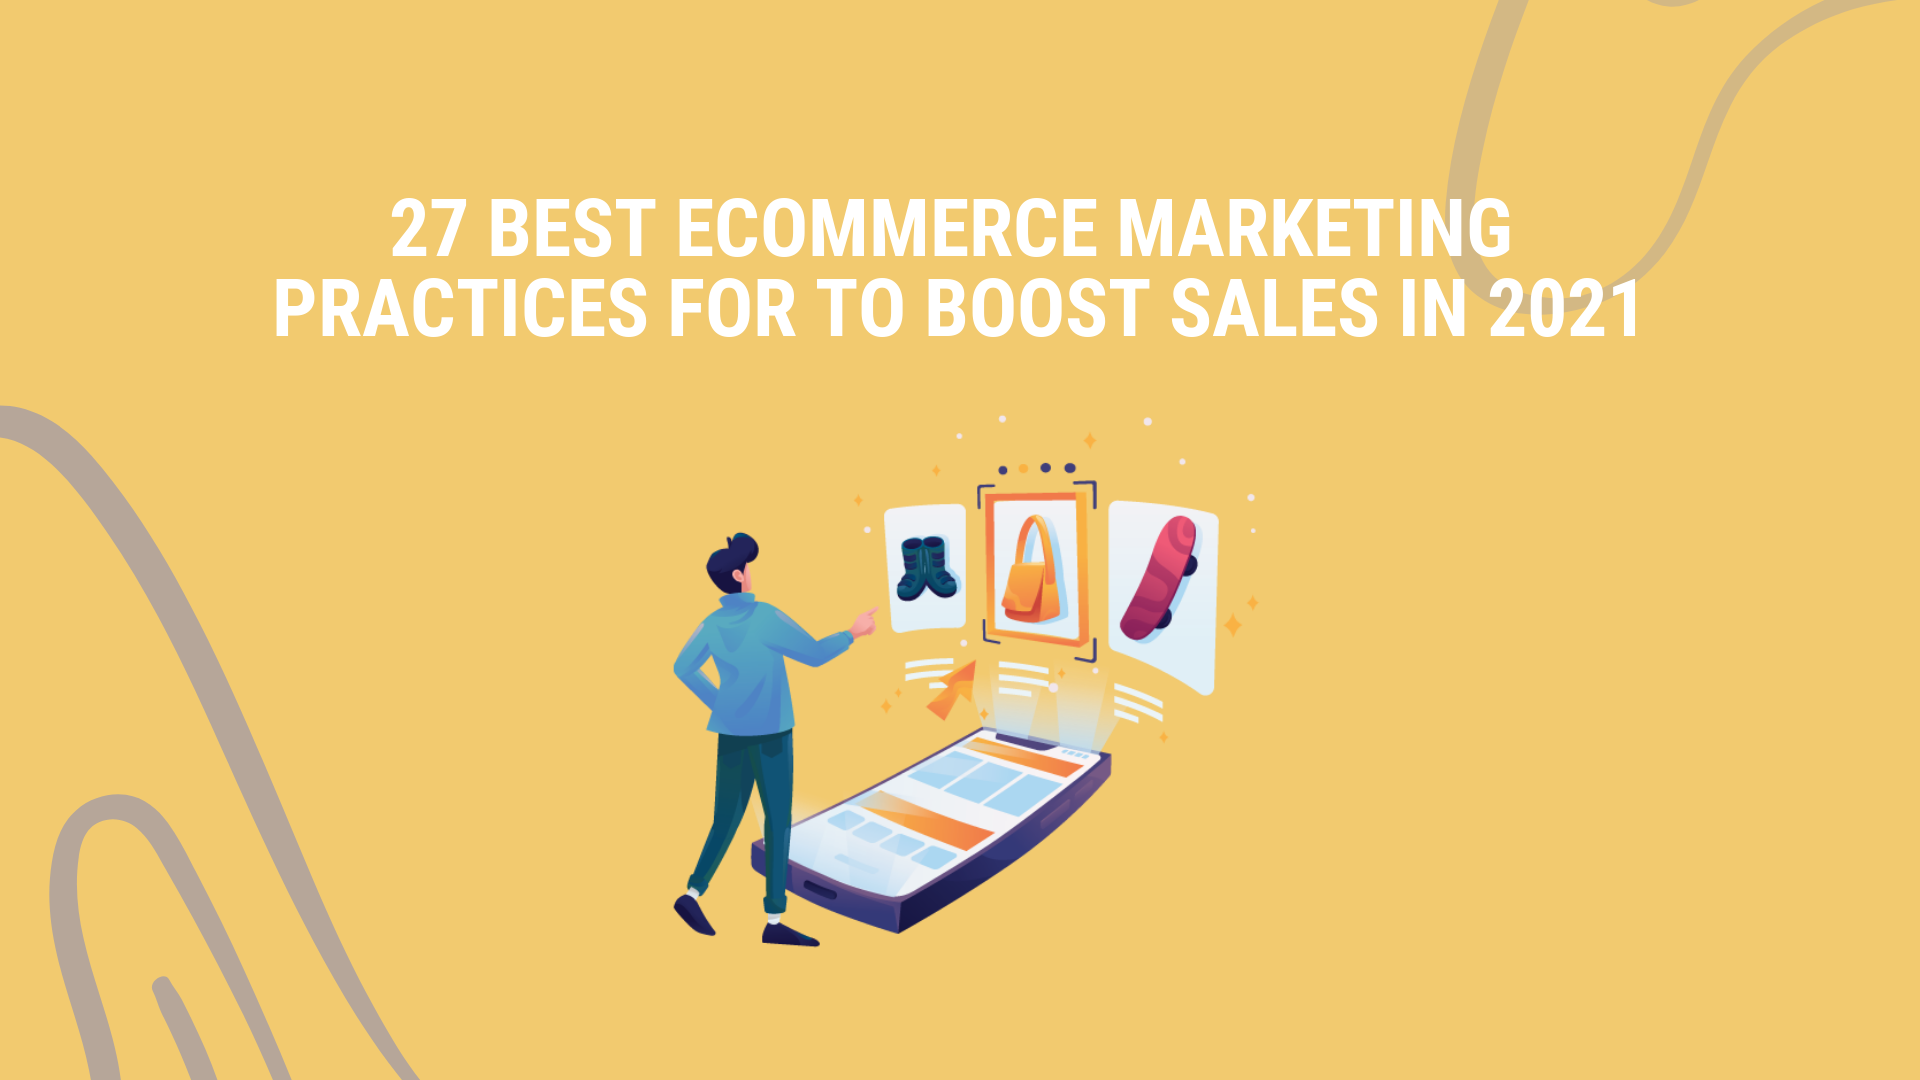 This article discusses 27 of the best eCommerce marketing practices and tips that you can apply to your E-commerce business.